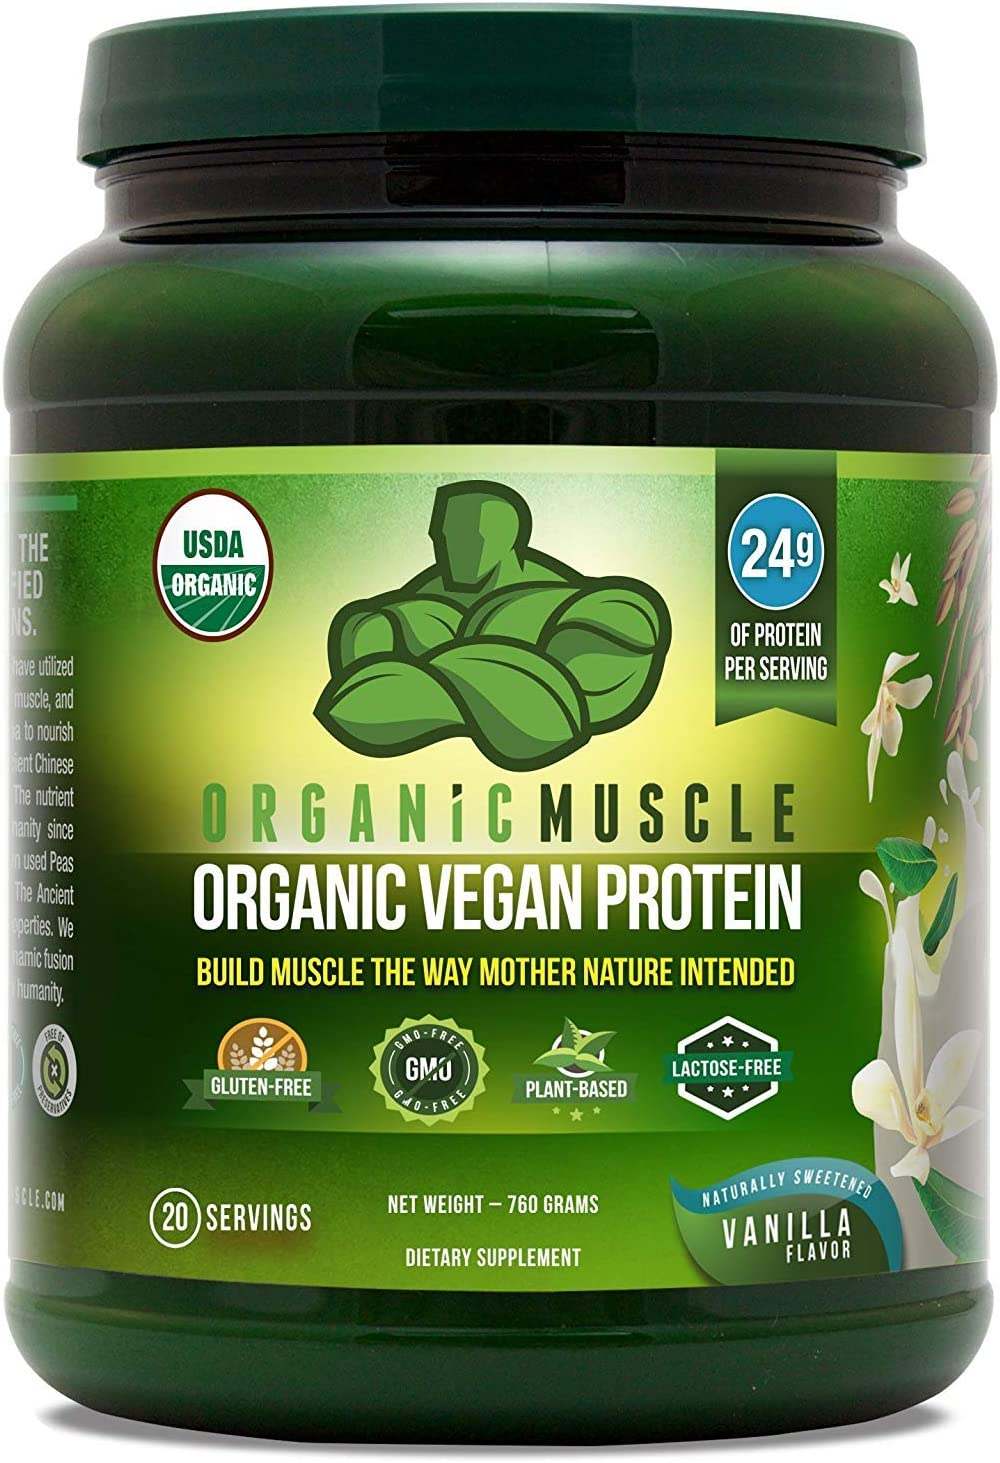 USDA Organic Vegan Protein Powder – Great Tasting Vanilla Flavor W 24g of Protein -100 Organic Plant Based Protein Blend of Pea, Hemp, Rice Protein Chia Seed, Flax Seed -760g – ORGANIC MUSCLE